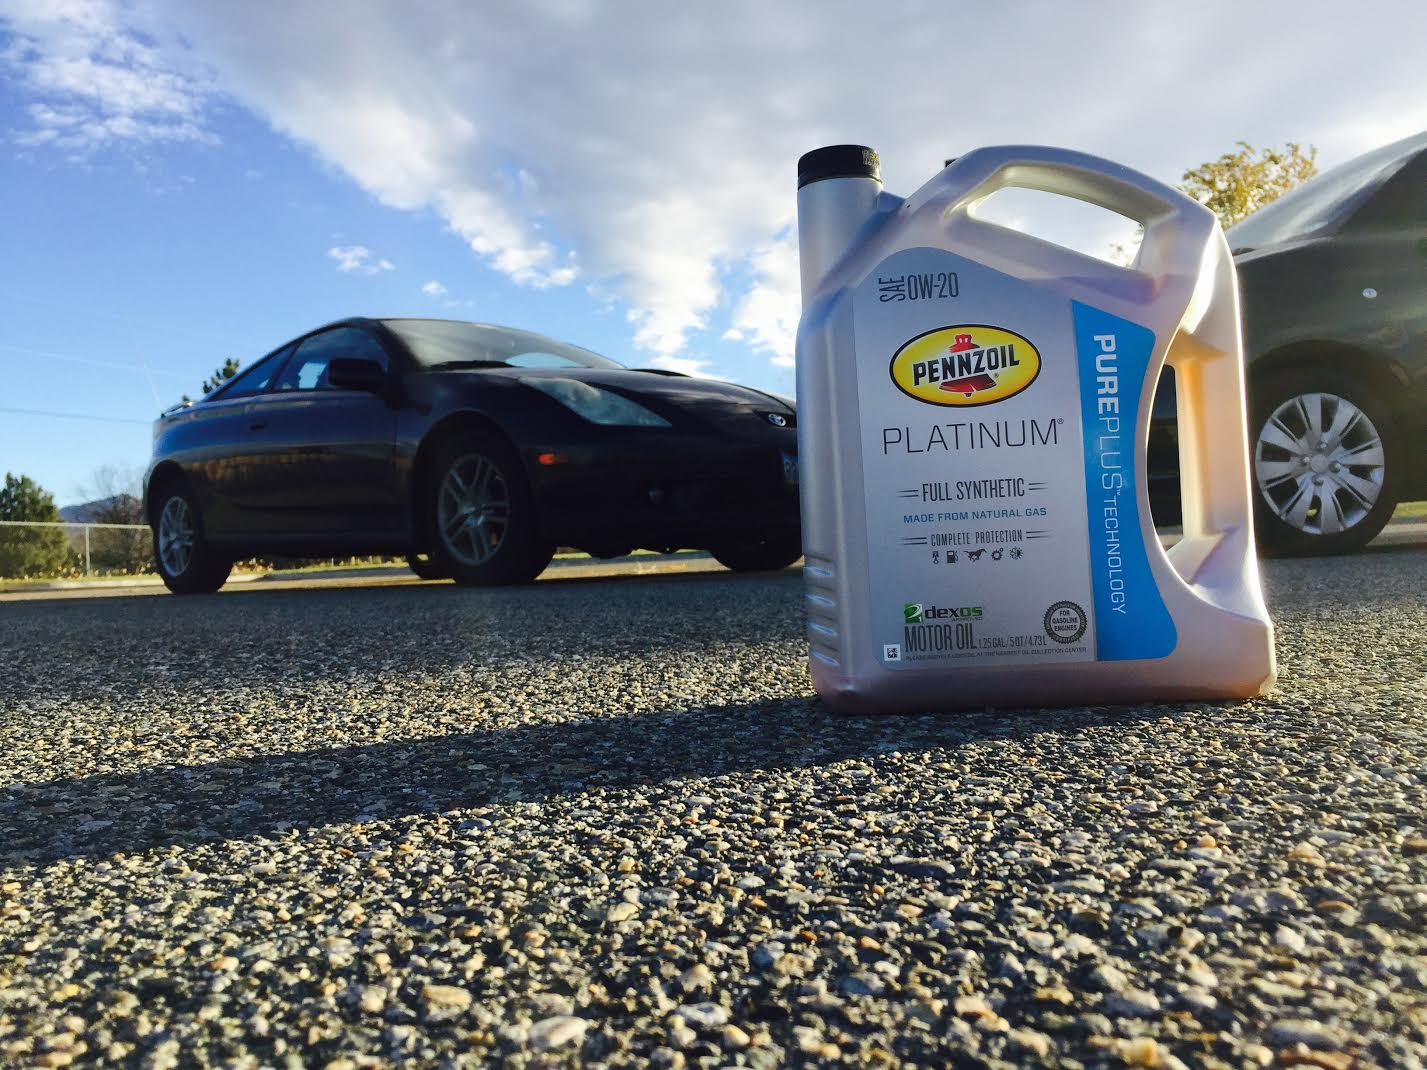 pennzoil, pennzoil fully synthetic, pennzoil winter rollback, walmart, walmart automotive center,